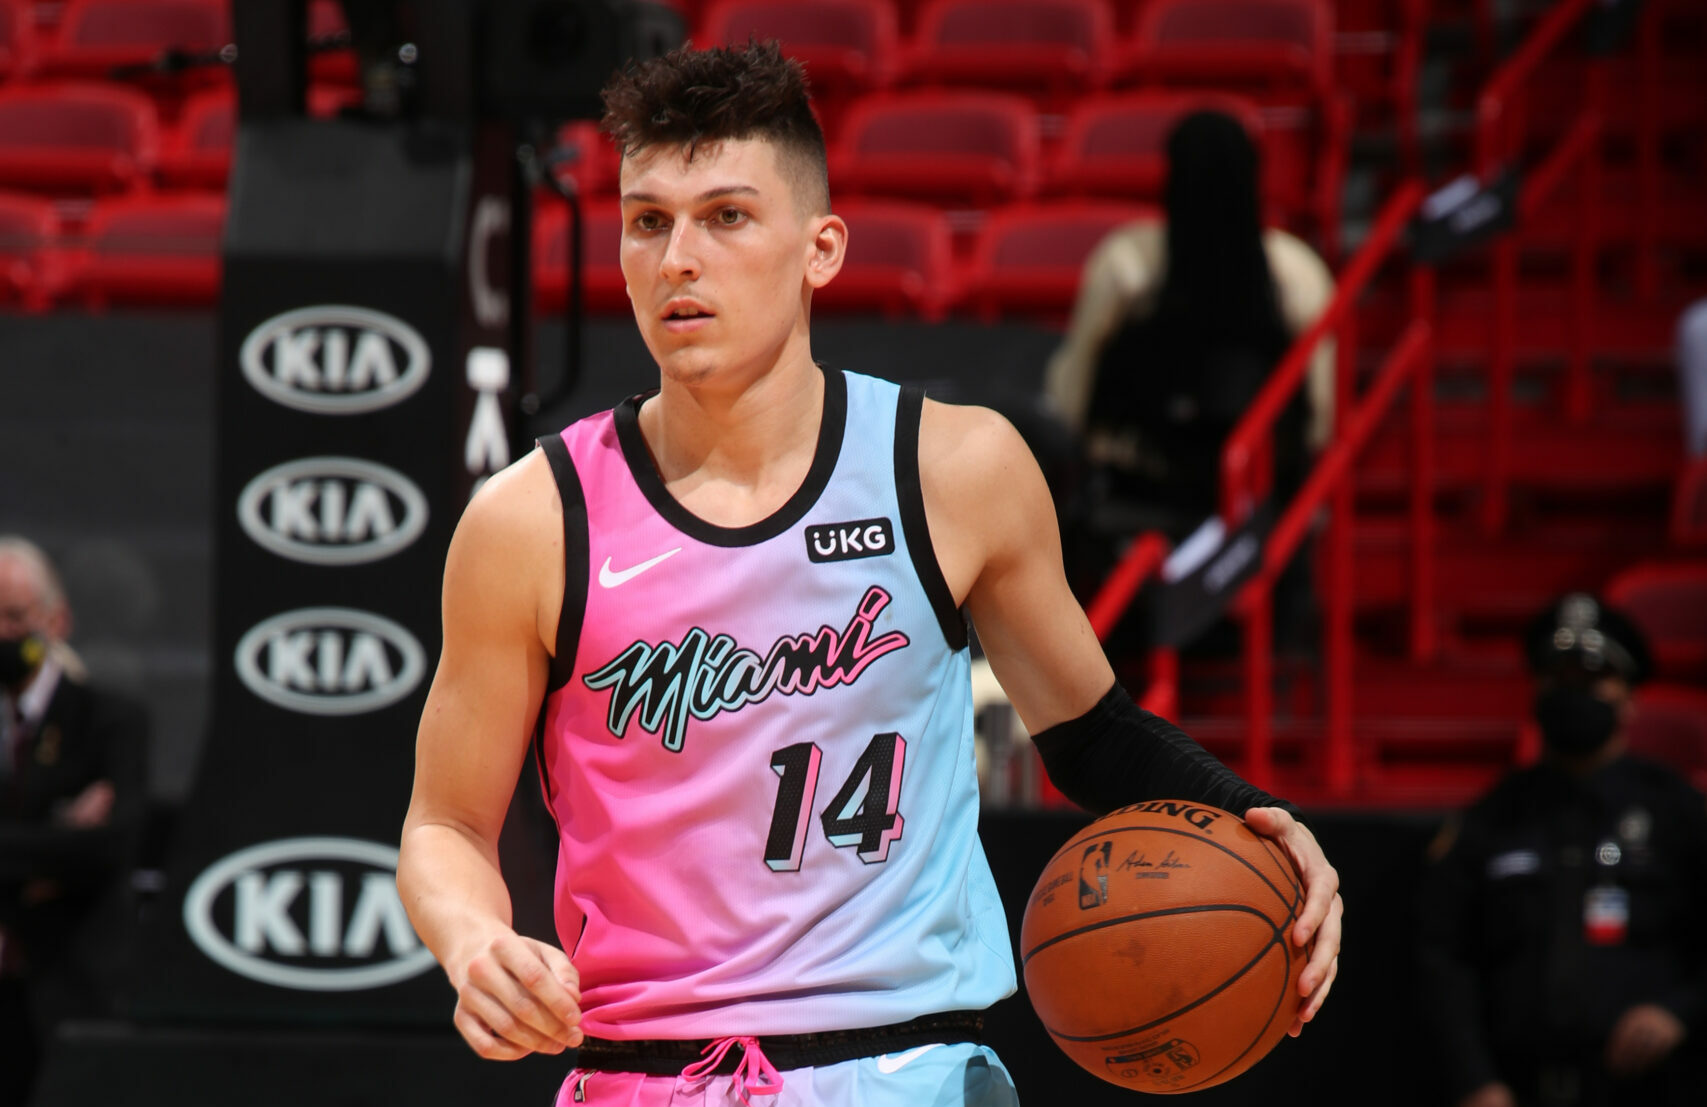 Tyler Herro out of virus protocols, cleared to play for Heat